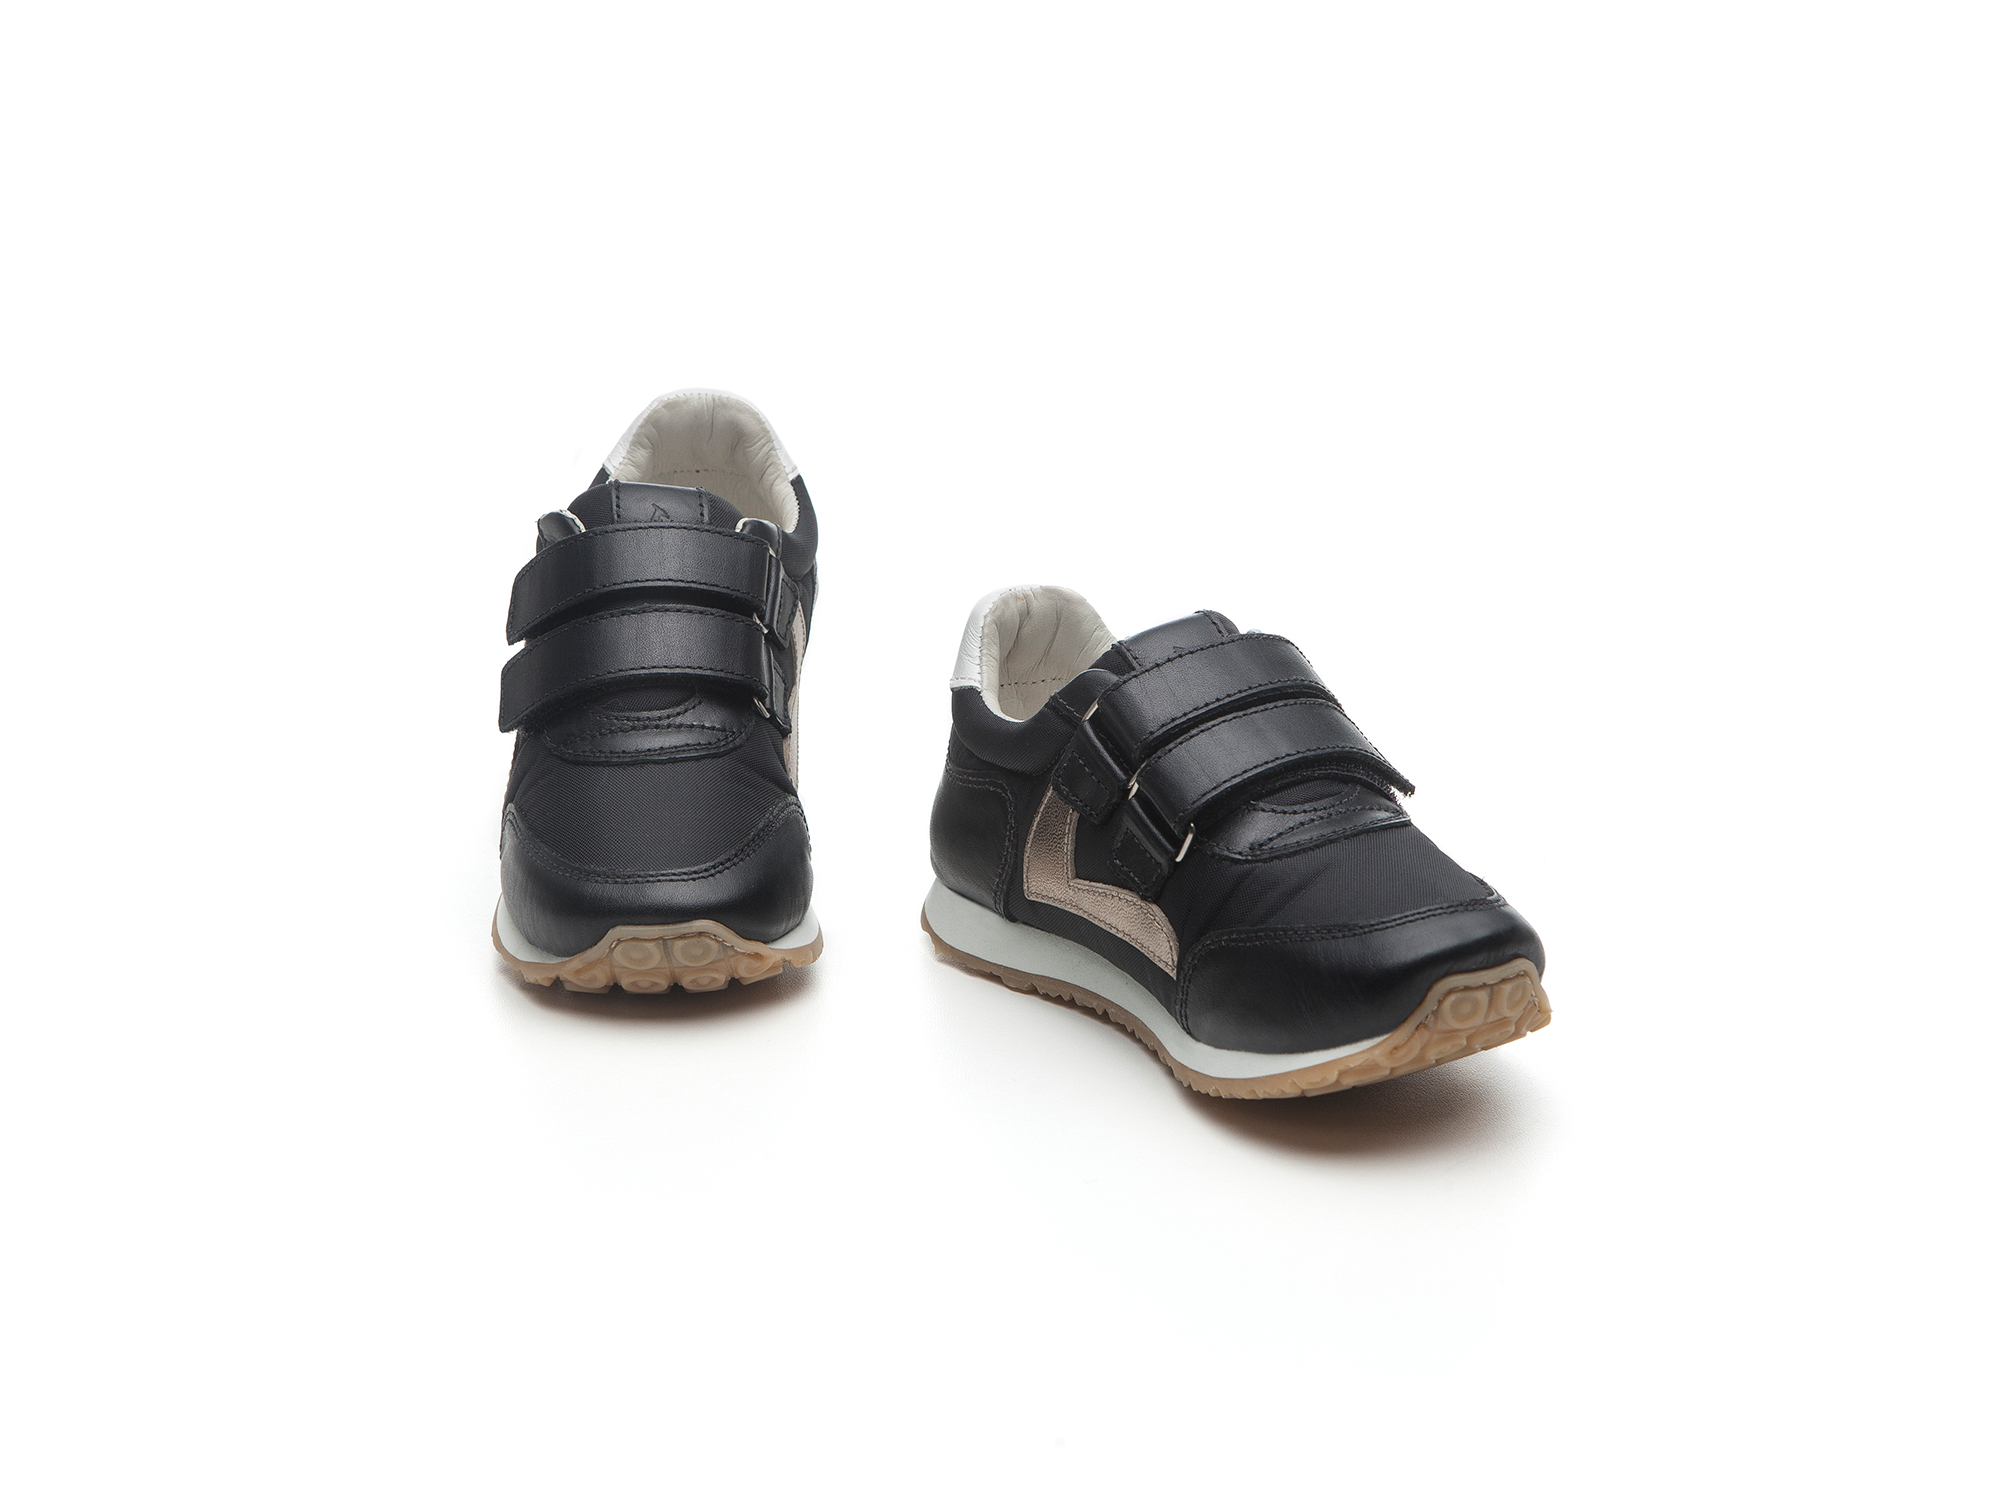 Tênis Little Jump Black Nylon/ Black Toscana  Toddler 2 à 4 anos - 1